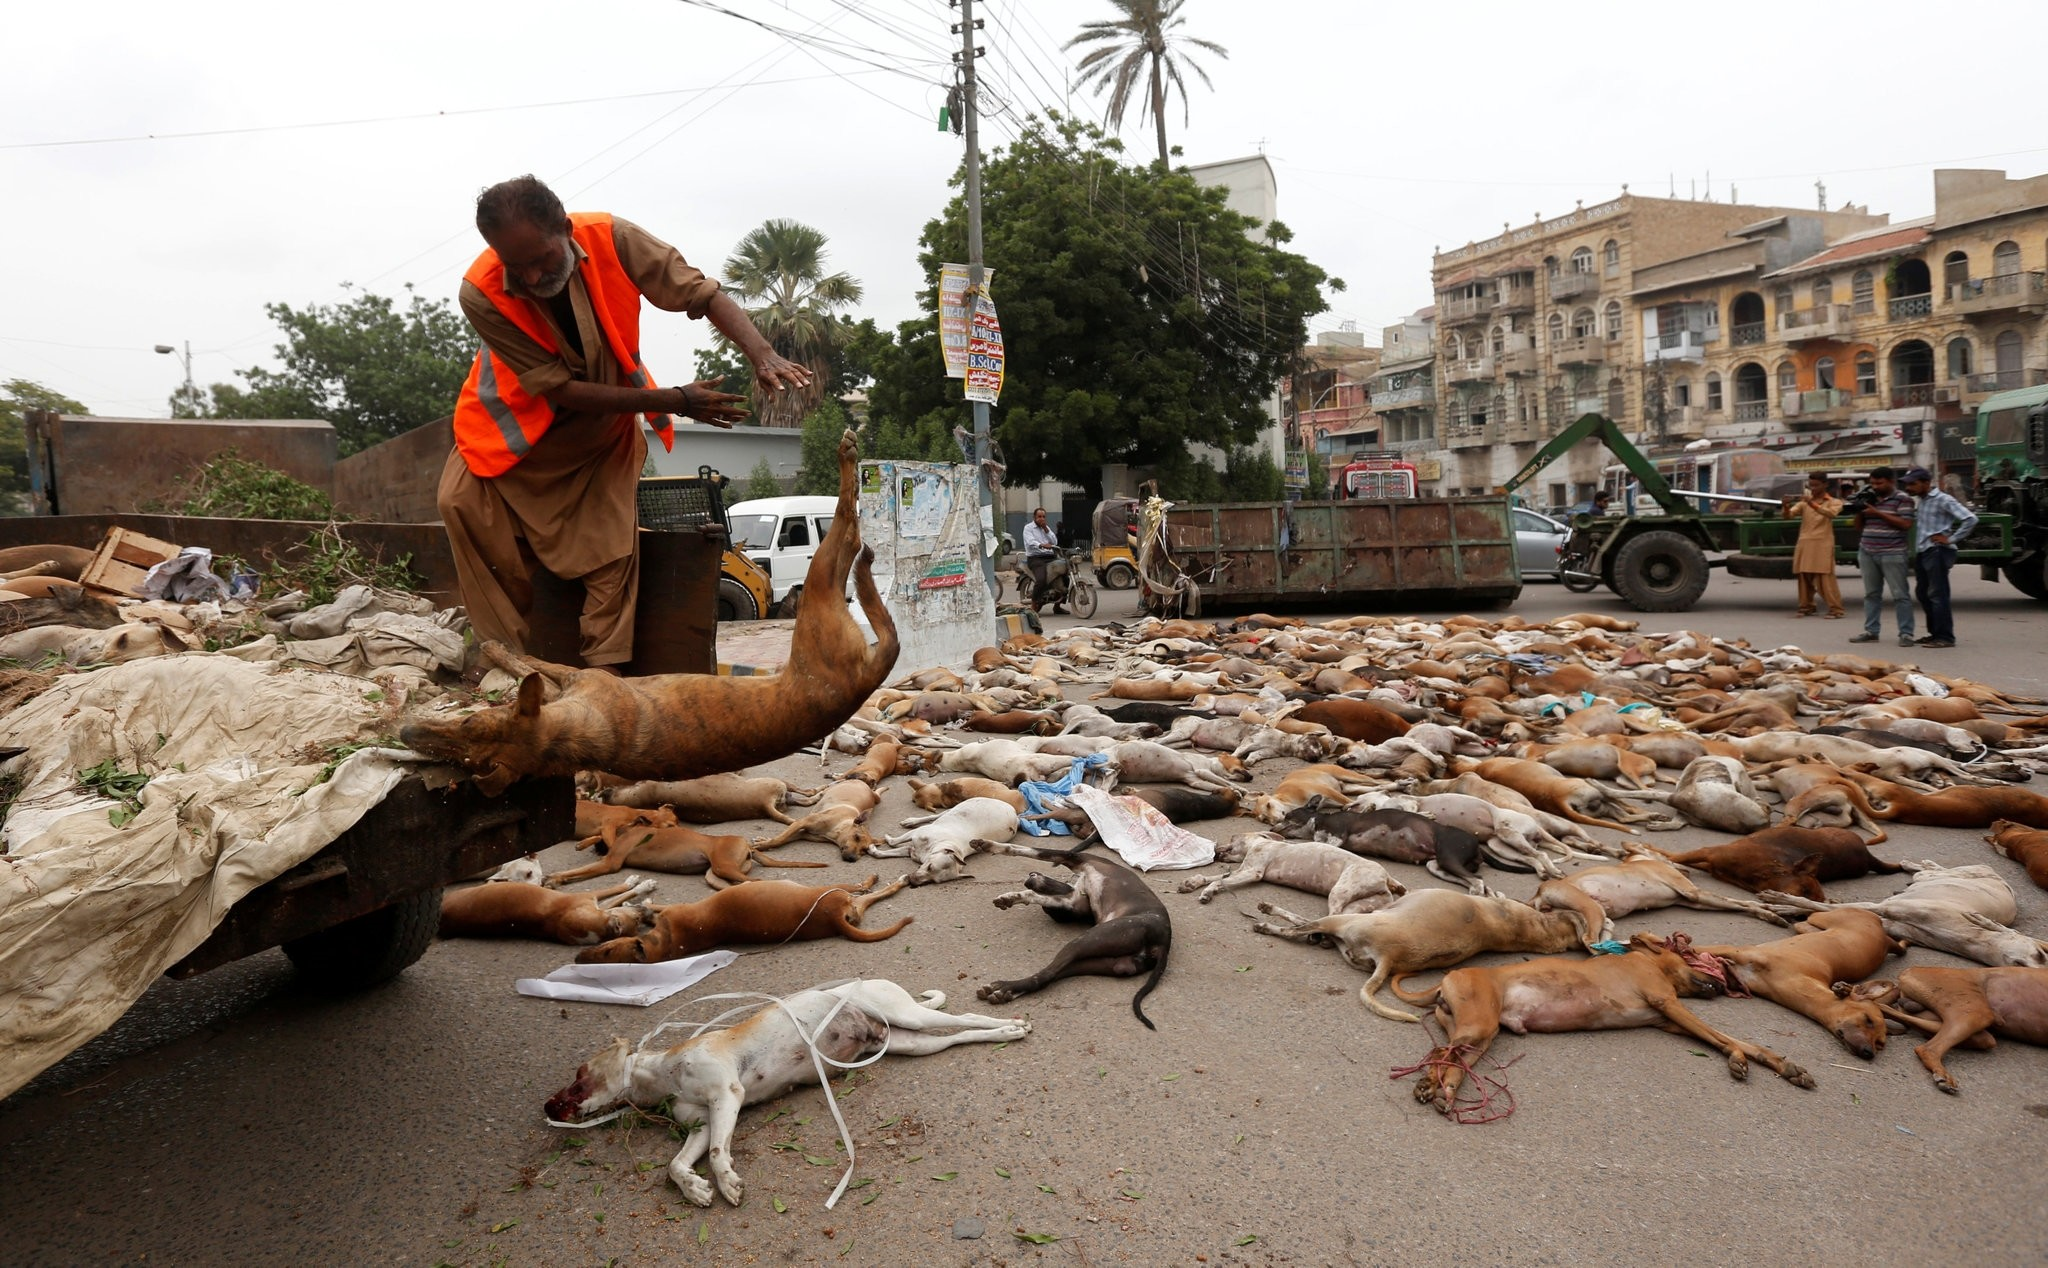 Municipality workers conduct such drives on a routine basis in which dozens of stray dogs are killed across the largest metropolis Karachi. (EPA Photo)